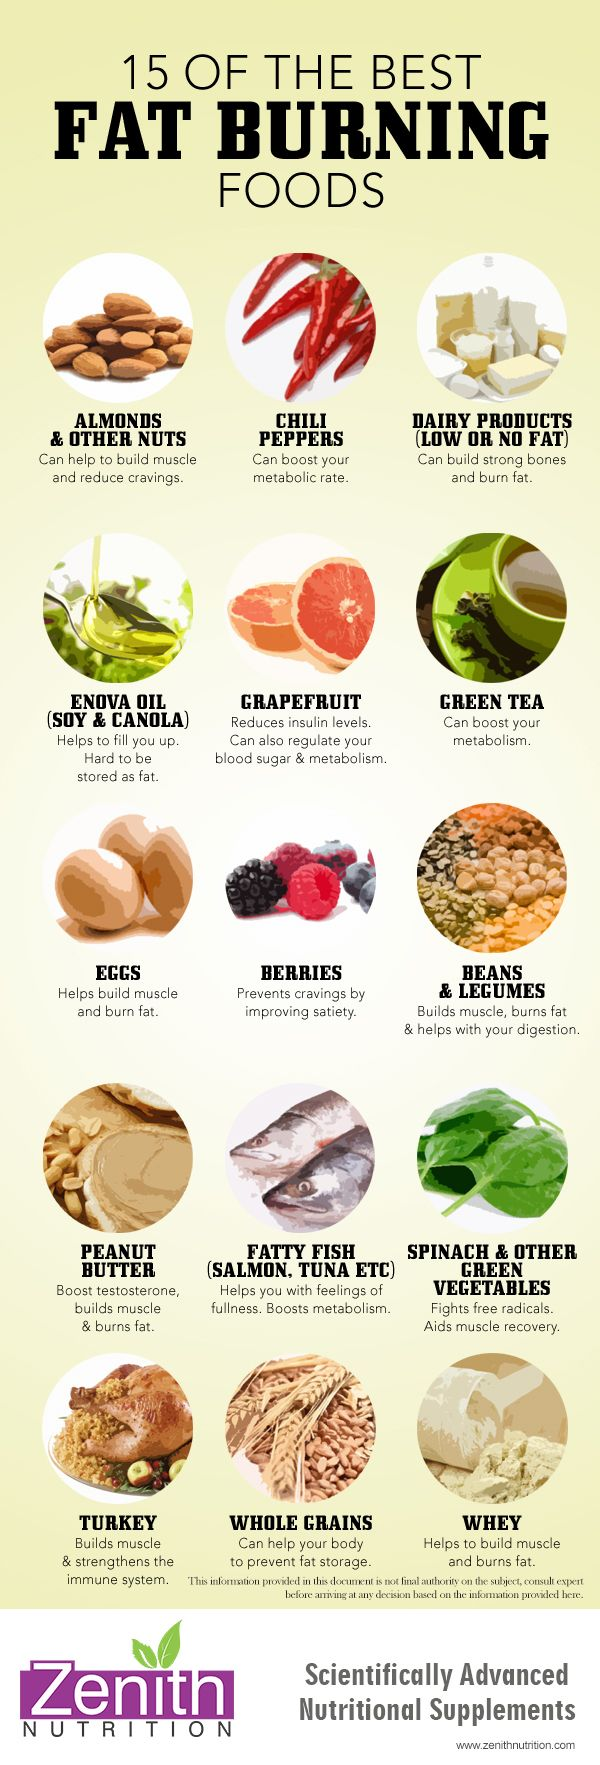 Best Fat Burning Foods. Almonds, Chilipeppers, Low fat dairy products, Enova oil, Grape fruit, Green tea, Eggs, Berries, Beans & legumes, Peannut butter, Fatty fish, Spinach, Turkey, Whole grains, Whey. Best supplements from Zenith Nutrition. Health Supplements. Nutritional Supplements. Health Infographics